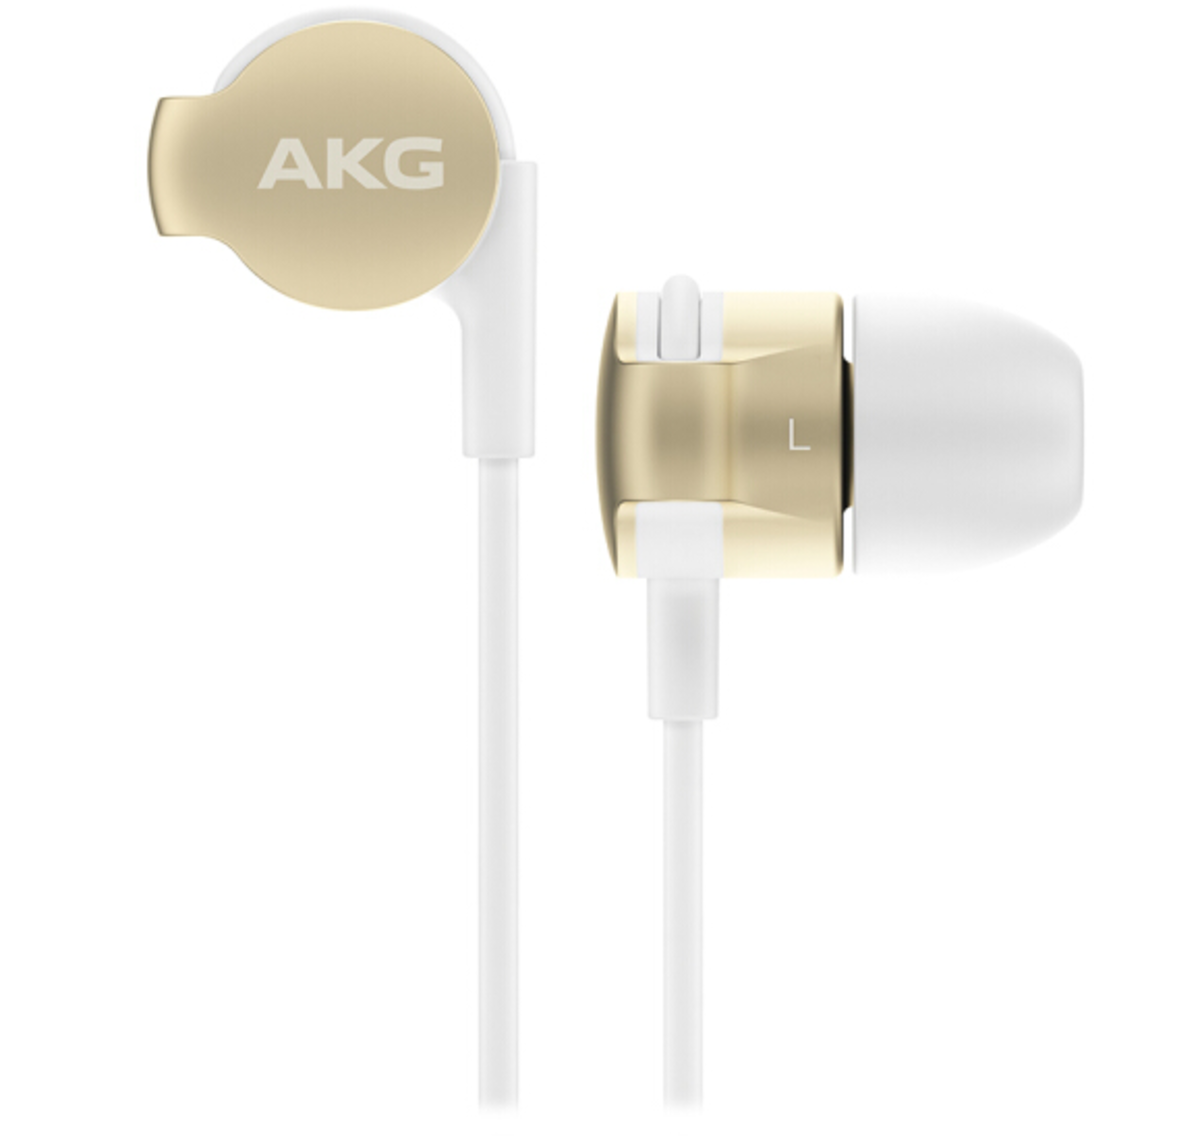 K3003LE In-ear headphone - AKG